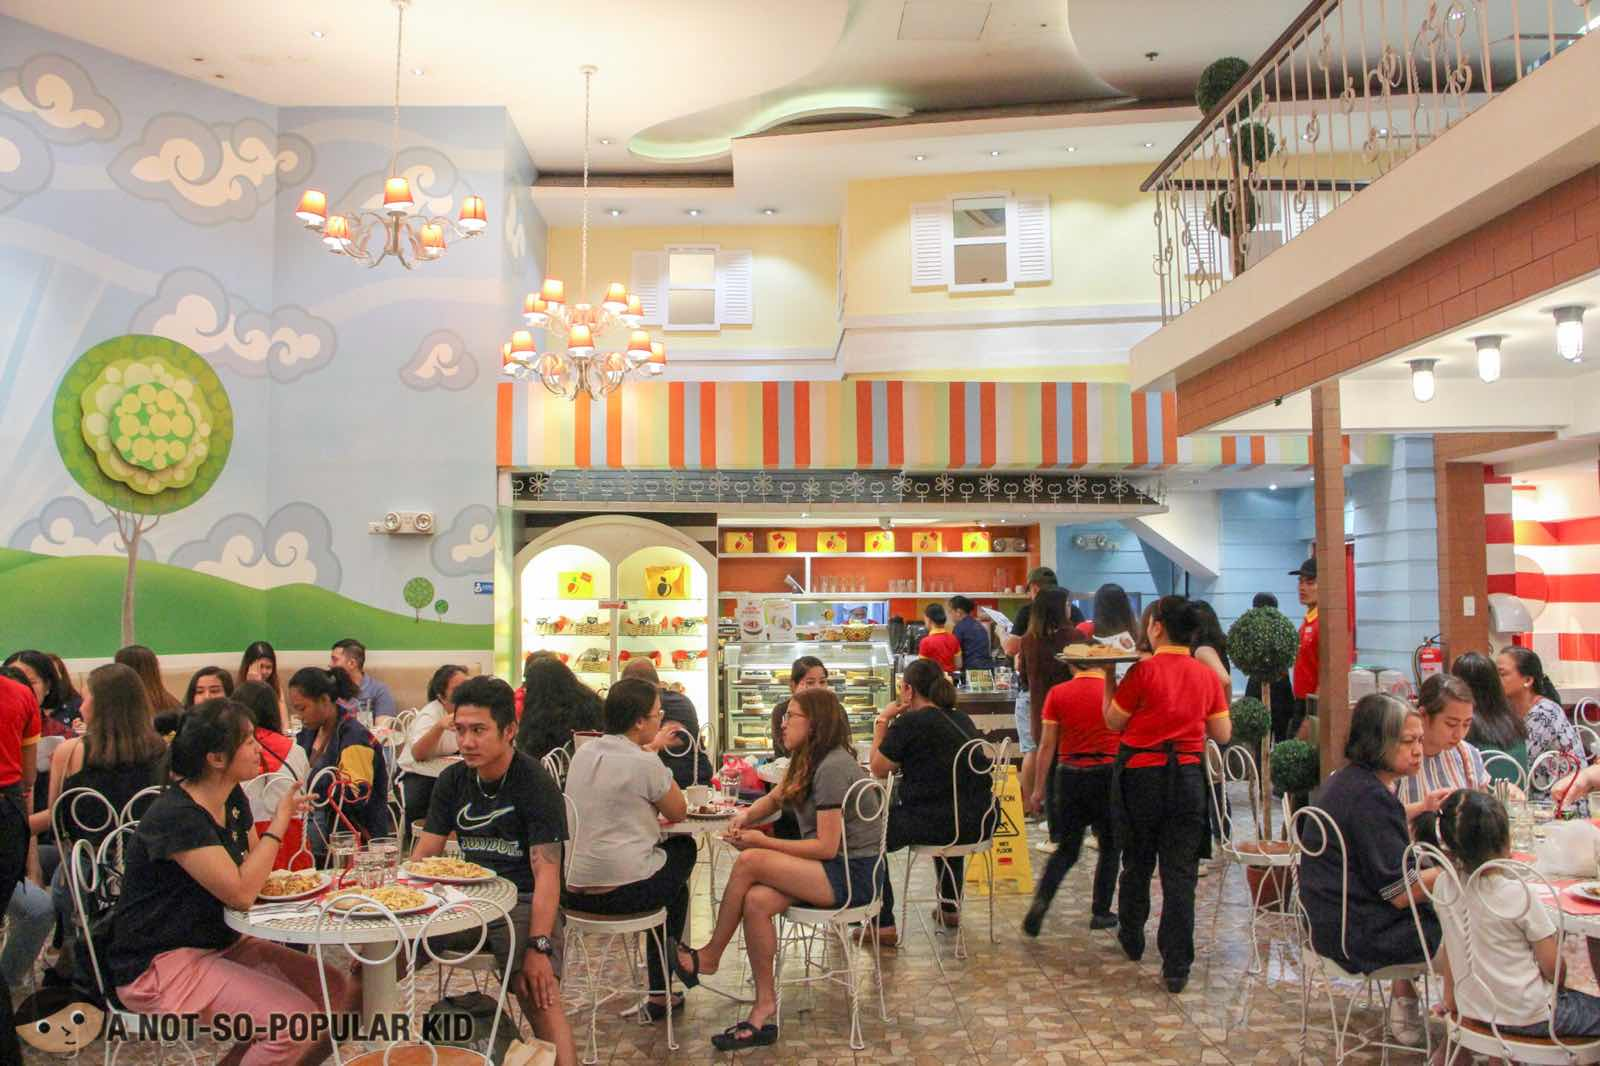 Interior of Banapple in Gateway Mall